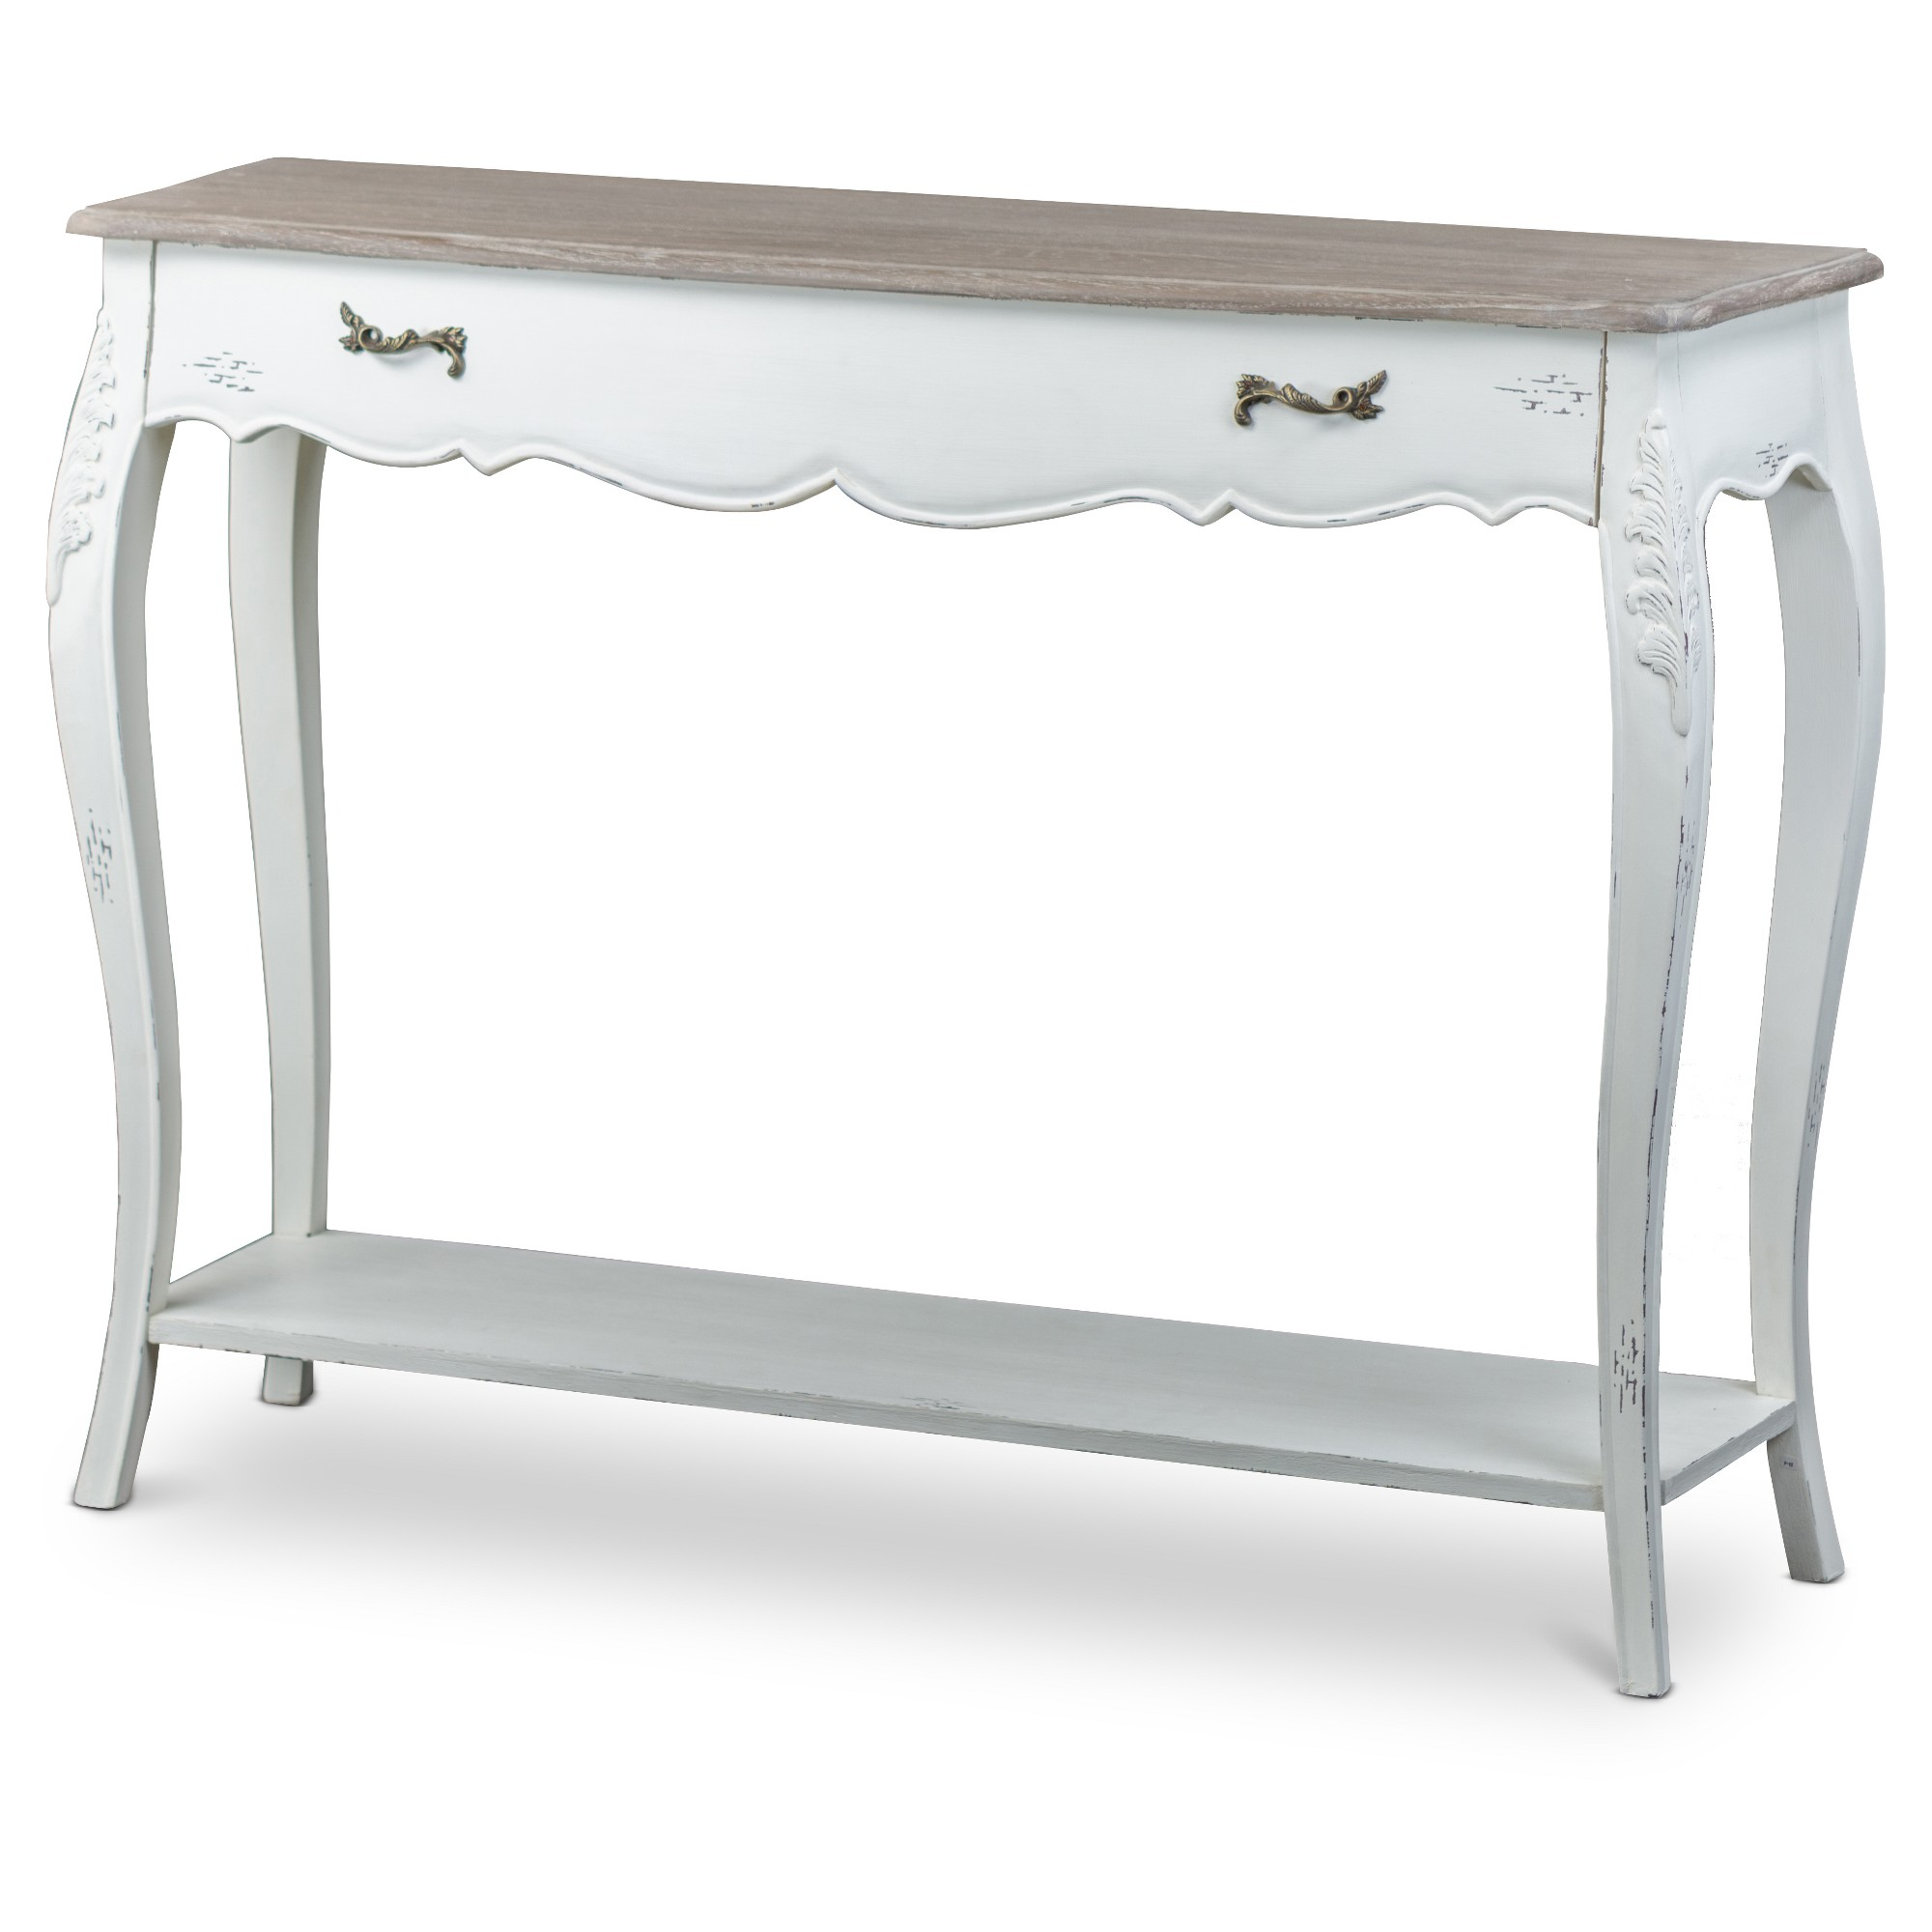 Bourbonnais wood traditional french console table baxton studio bourbonnais wood traditional french console table baxton studio white geotapseo Images